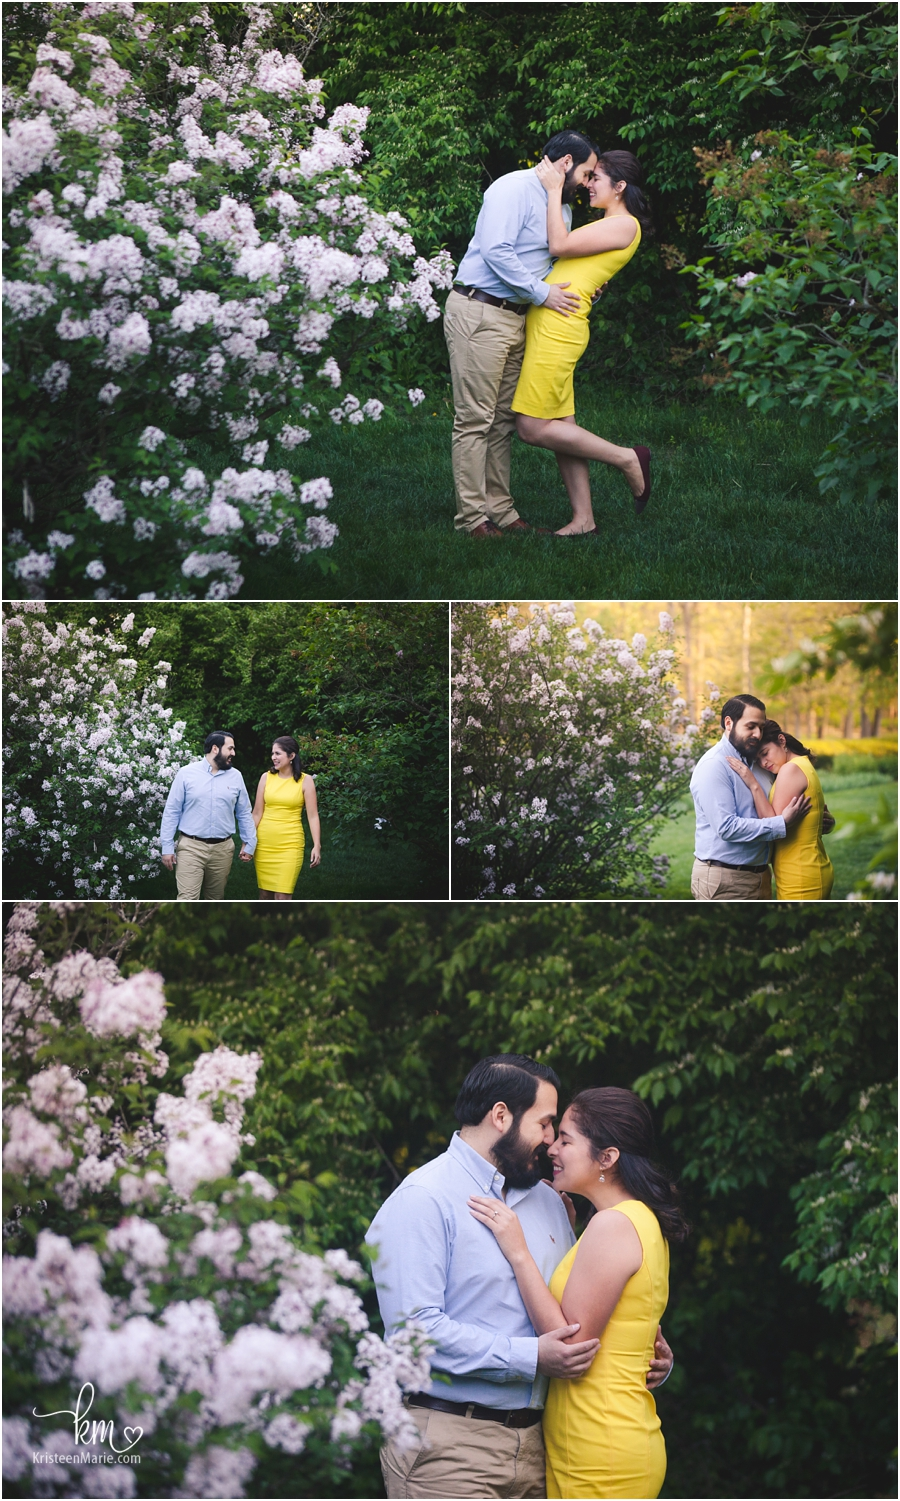 blooming spring flowers - engagement photography - so emotional